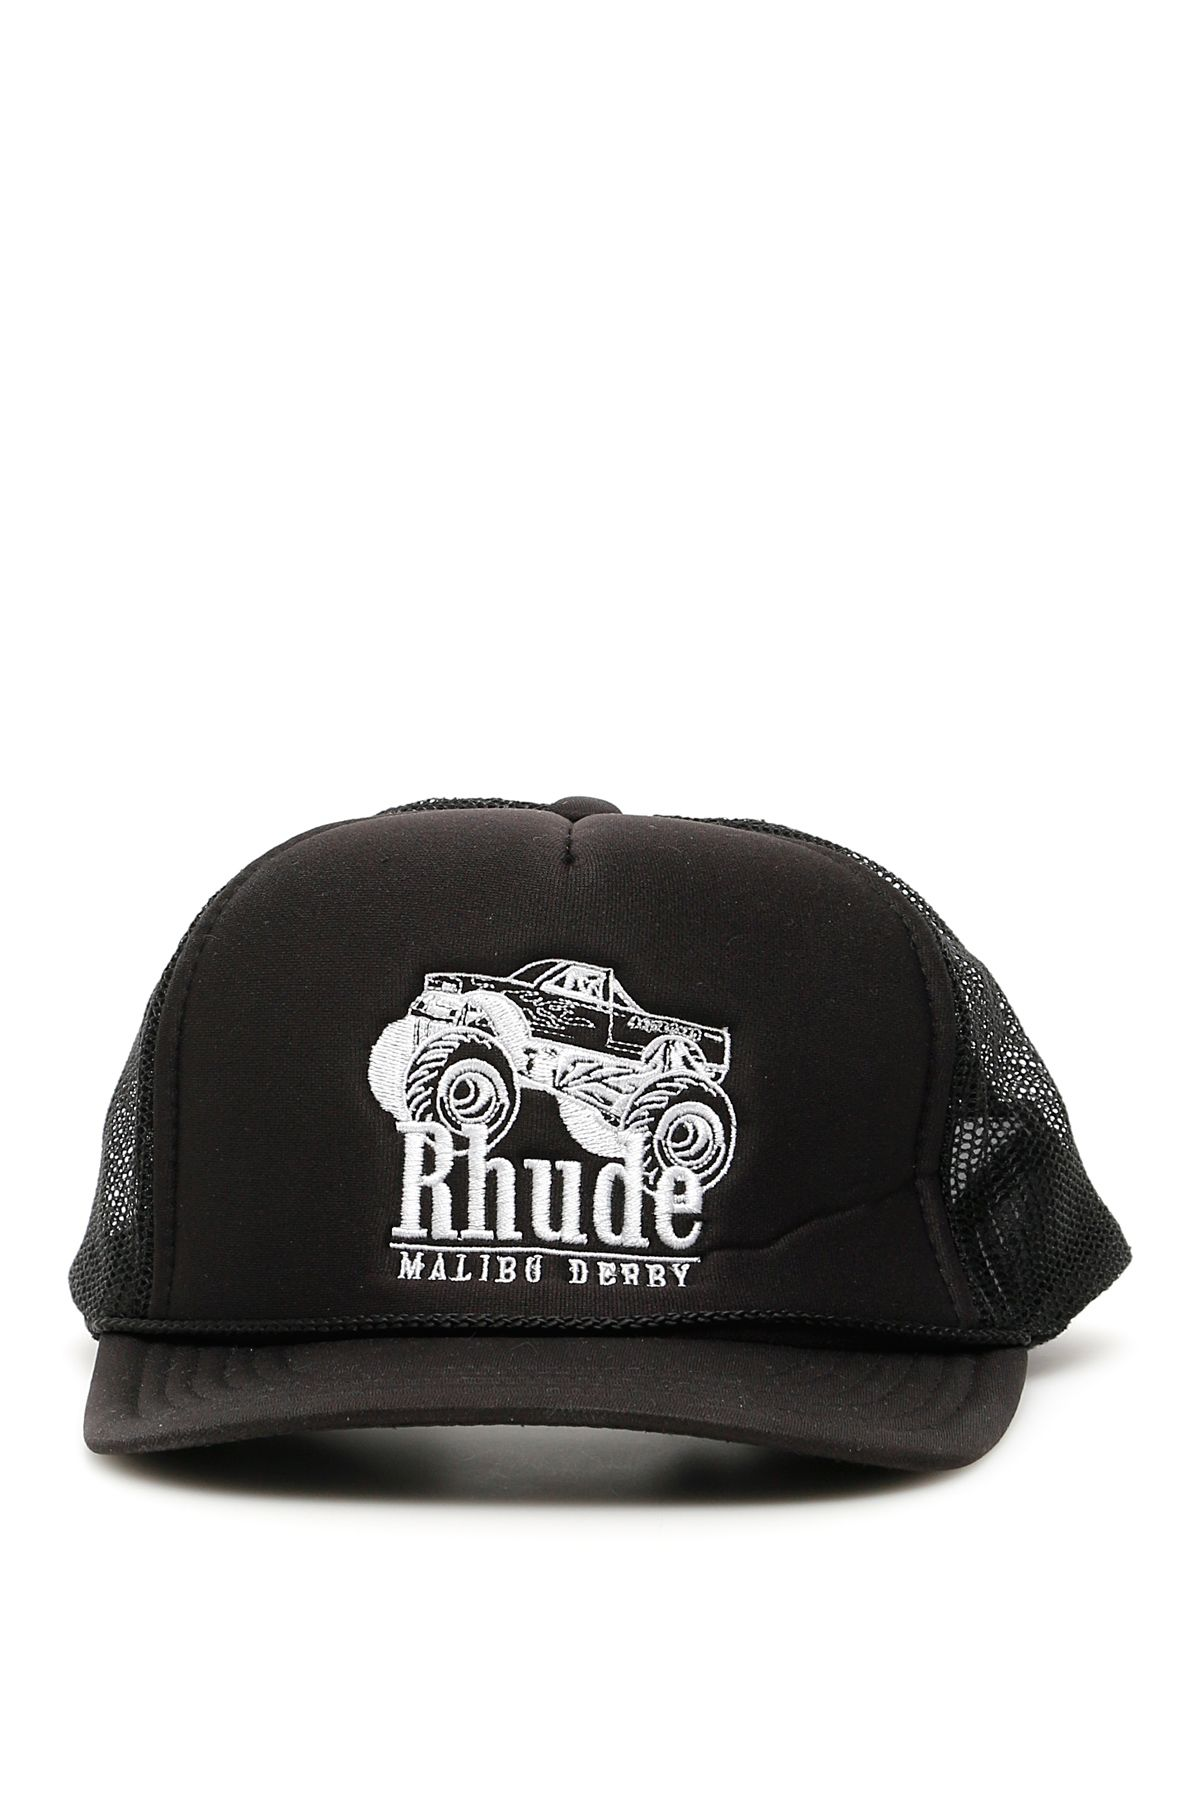 Rhude Malibu Derby Trucker Cap In Basic db33ada313d3